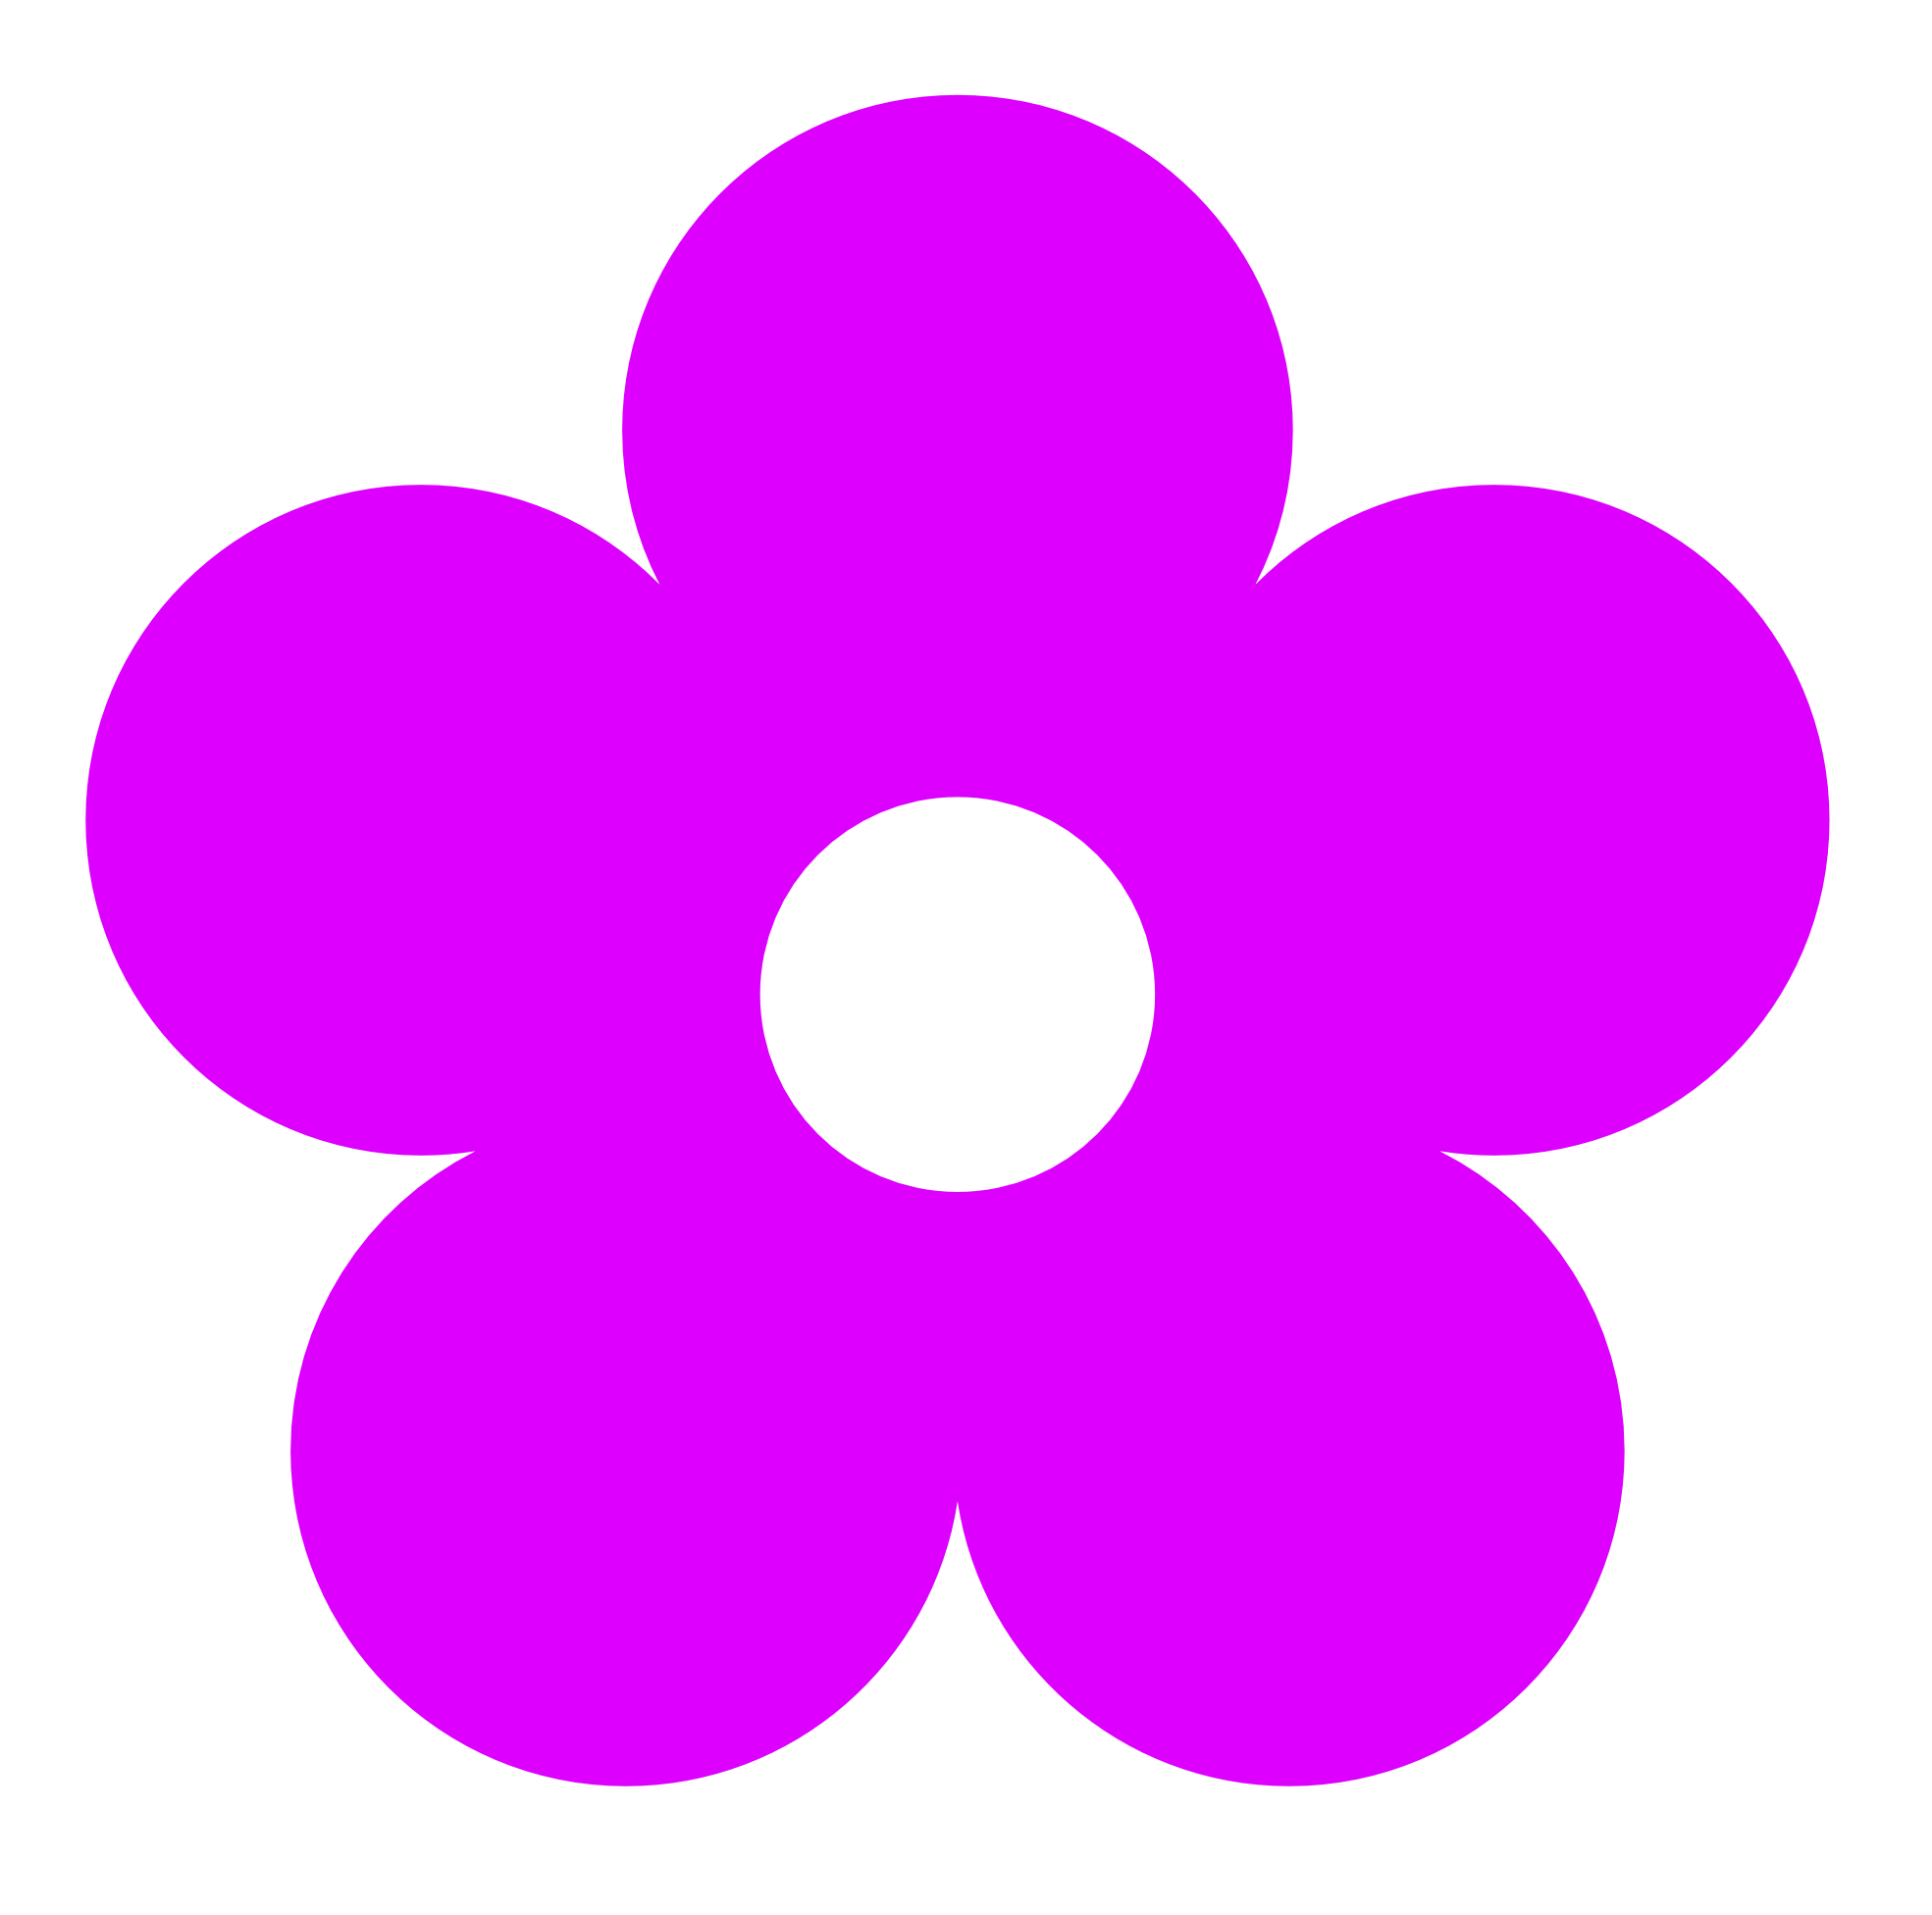 small flower clipart at getdrawings com free for personal use